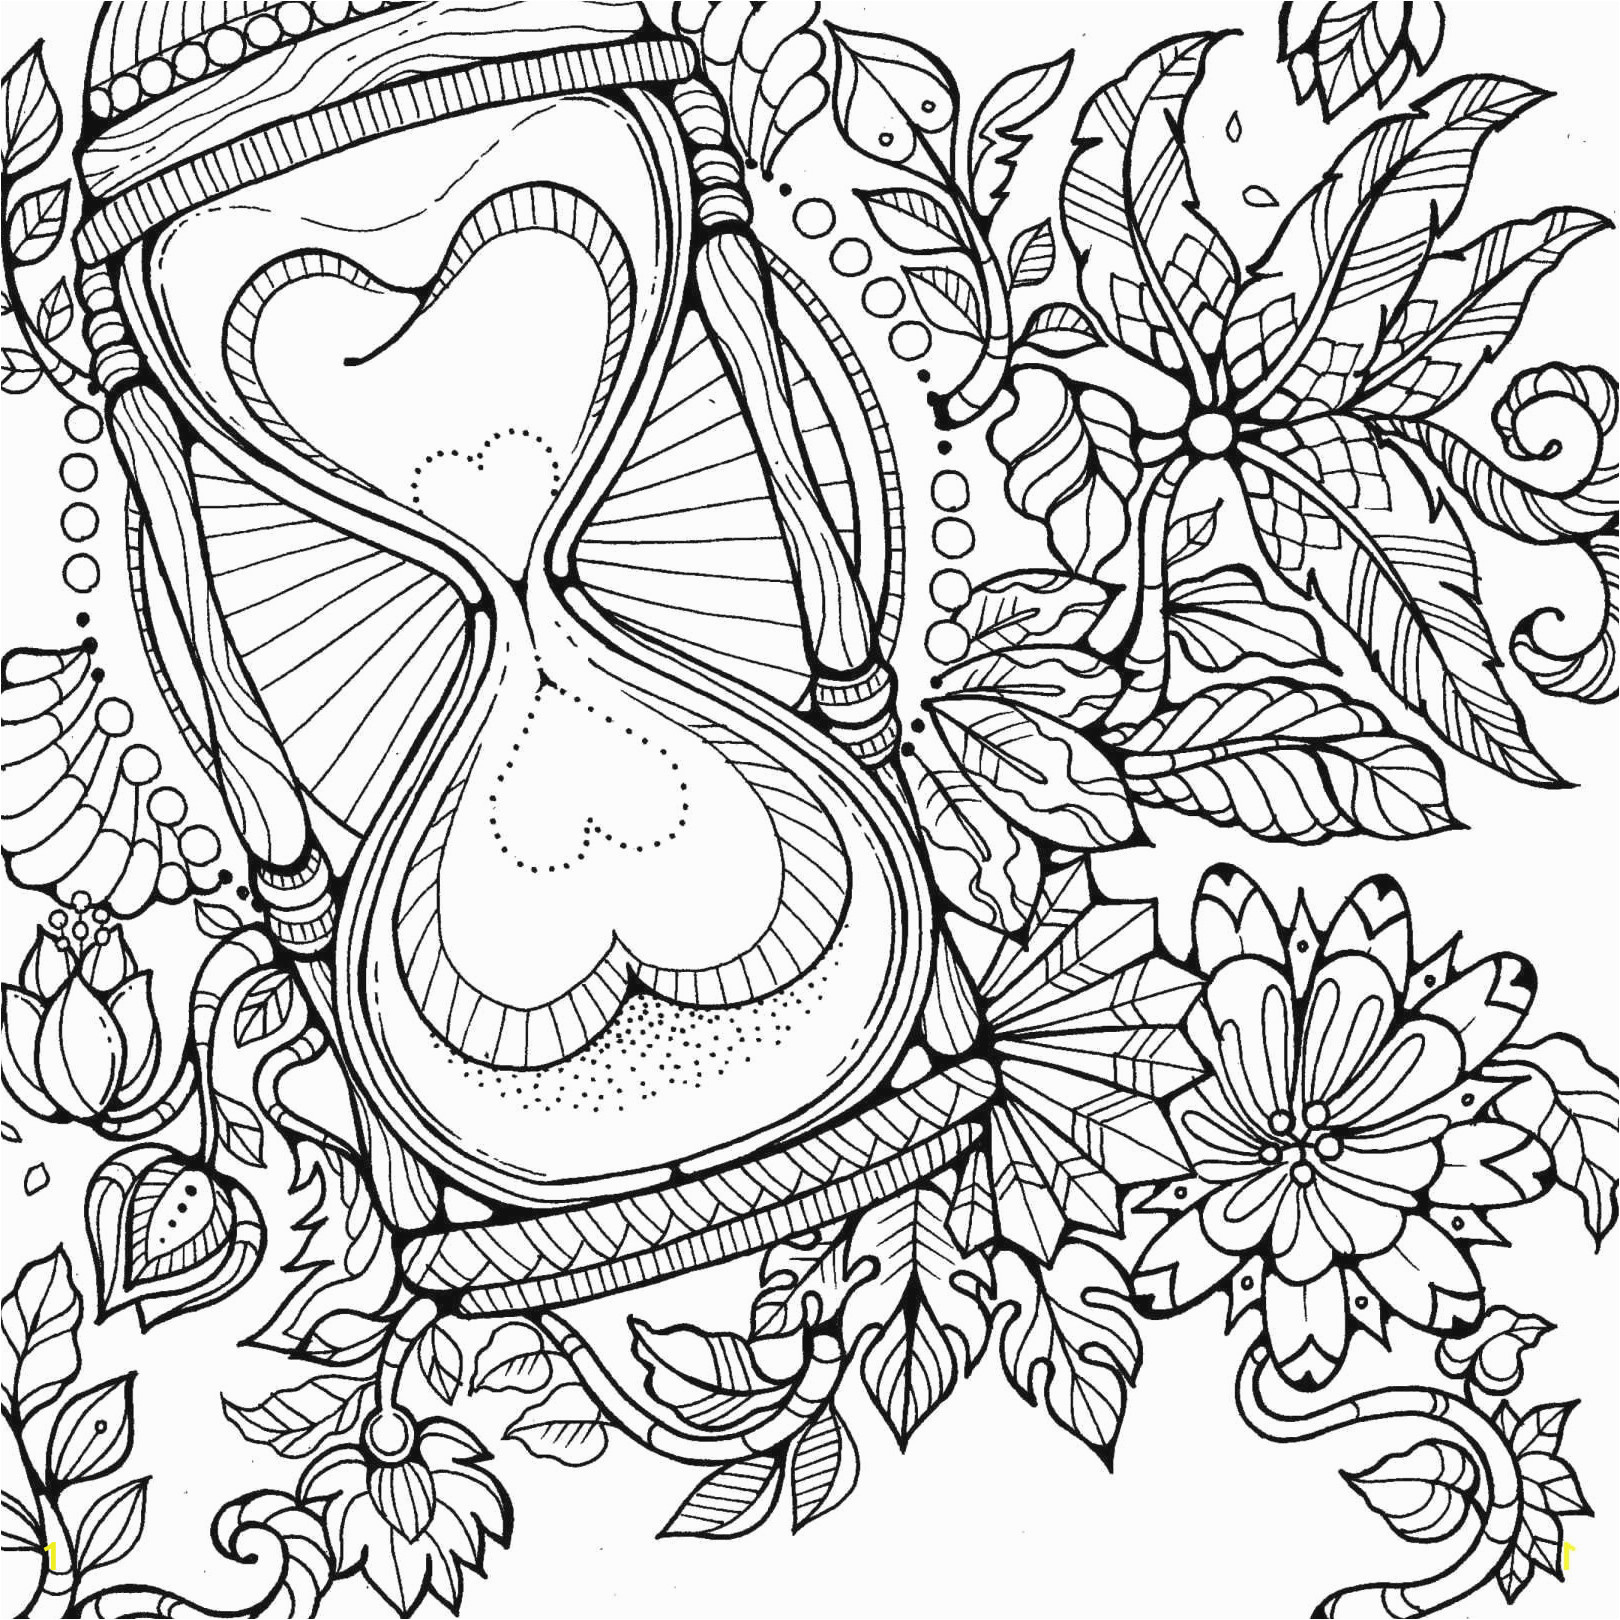 girl coloring page printable beautiful photography girl to color coloring pages of girl coloring page printable